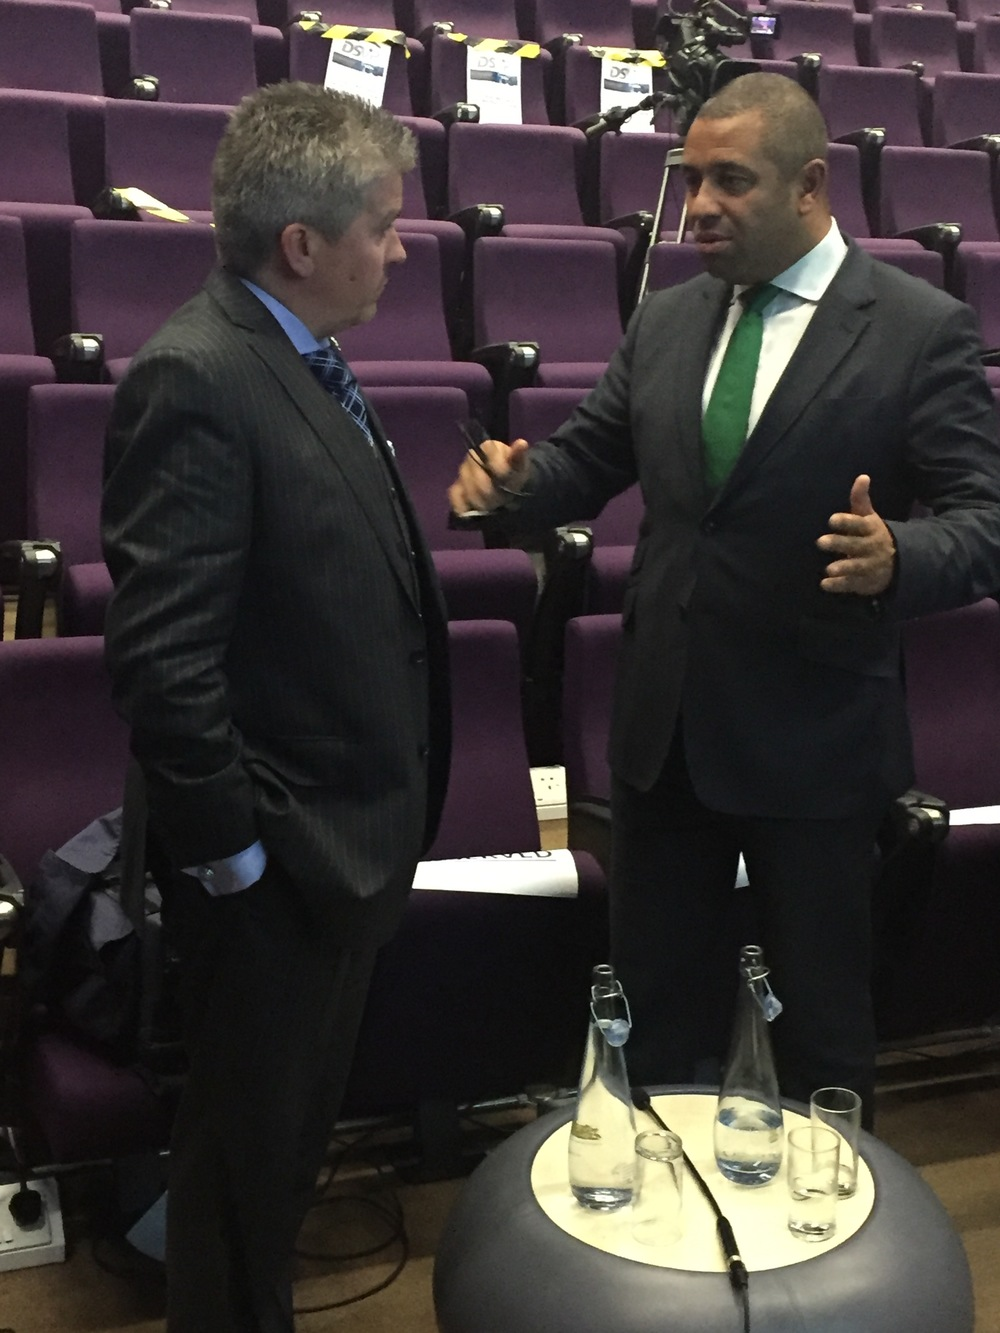 from left: David with James Cleverly MP